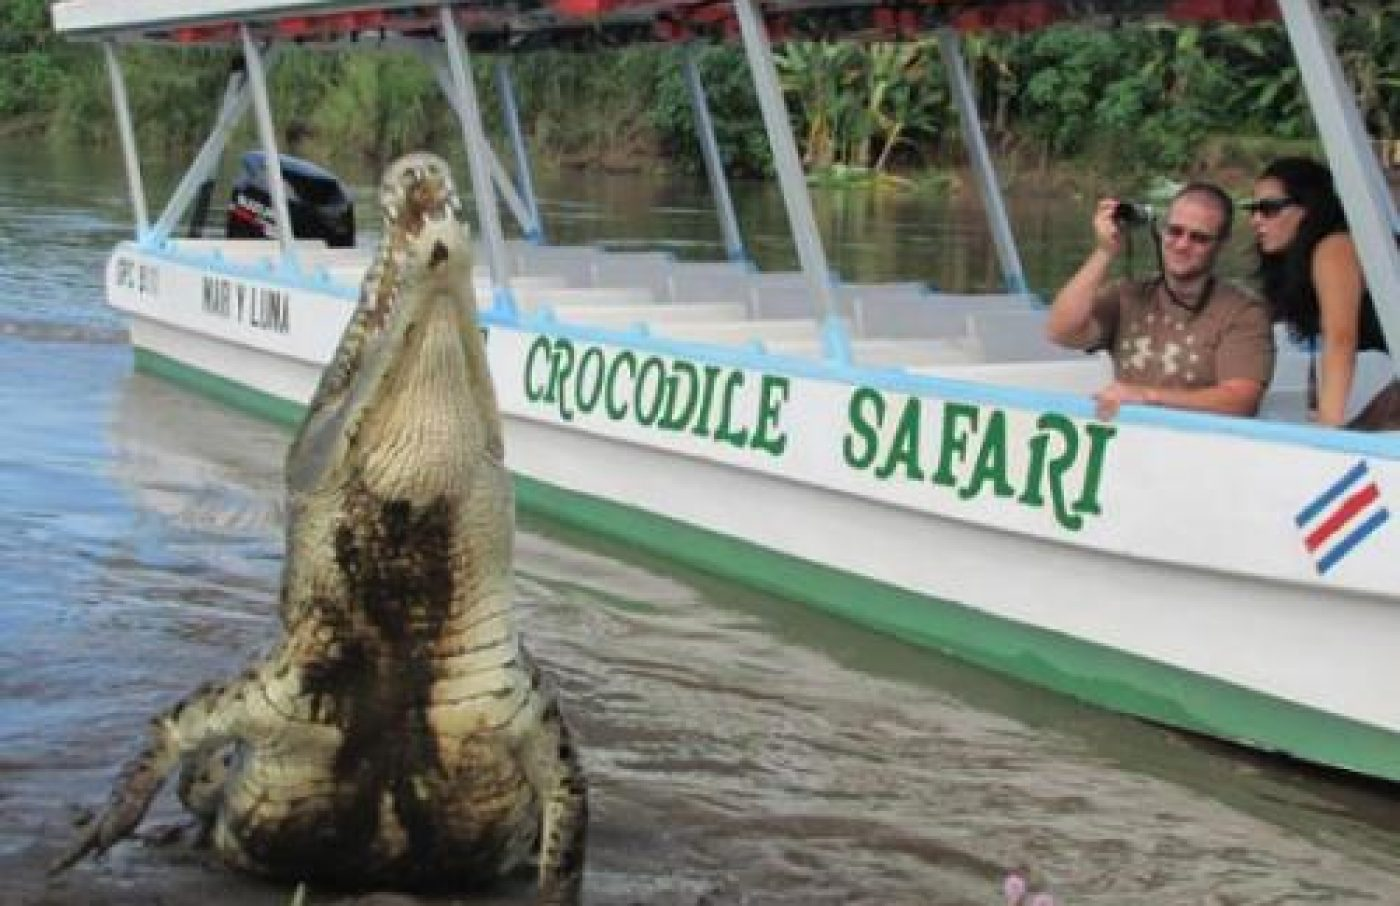 Jungle Crocodile Safari - Discover The Crocs!